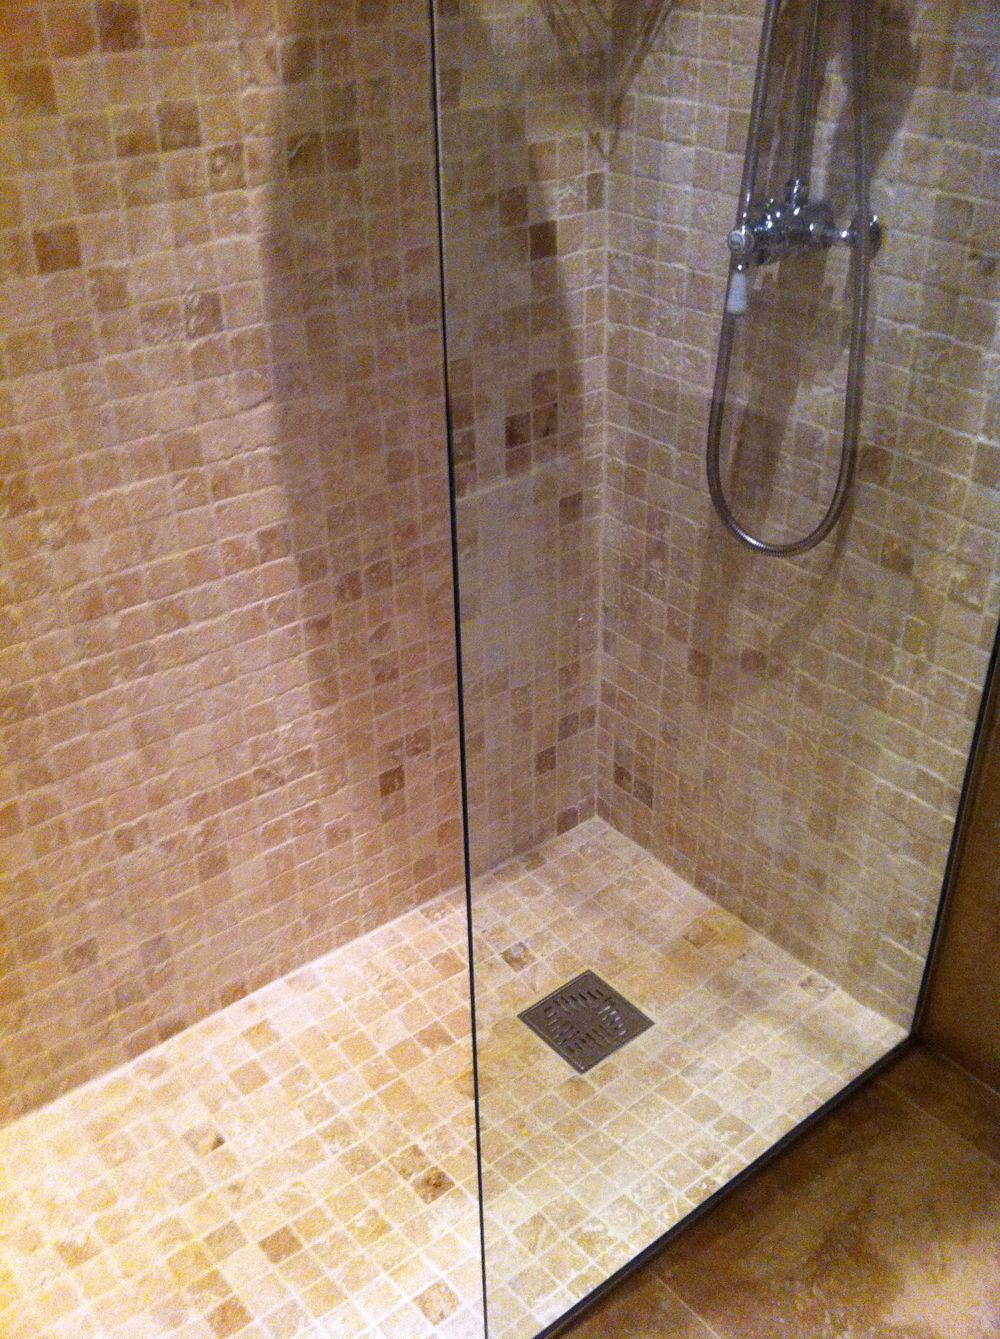 Wet room ideas bespoke wet room designs picture 559 preview wet room ideas bespoke wet room designs picture 559 preview dailygadgetfo Image collections